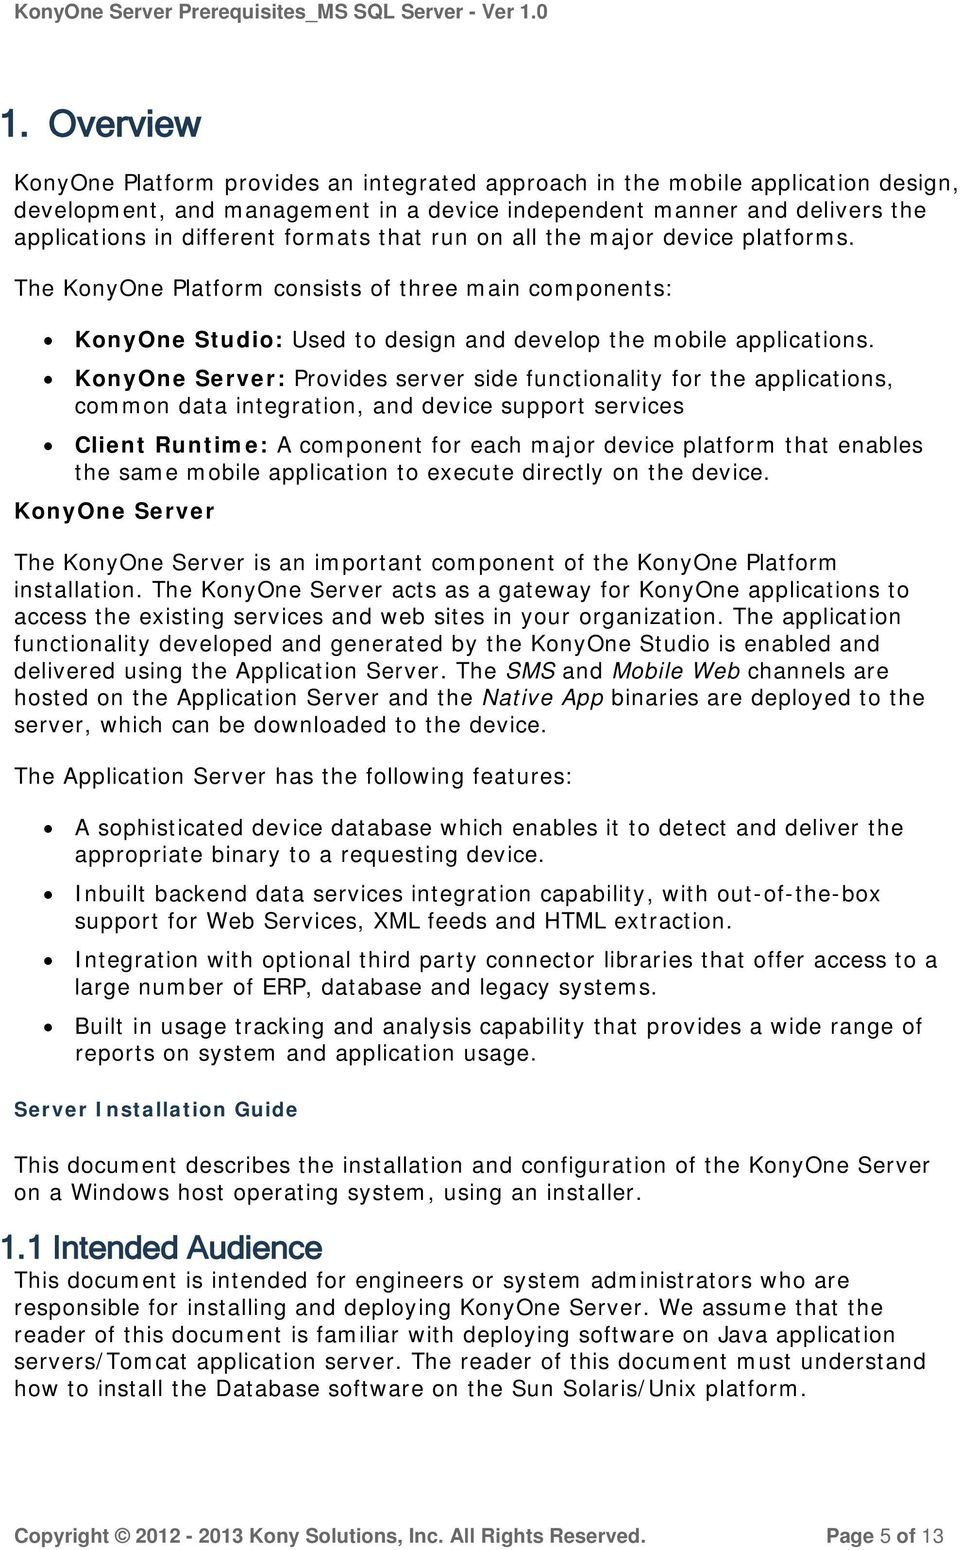 KonyOne Server: Provides server side functionality for the applications, common data integration, and device support services Client Runtime: A component for each major device platform that enables